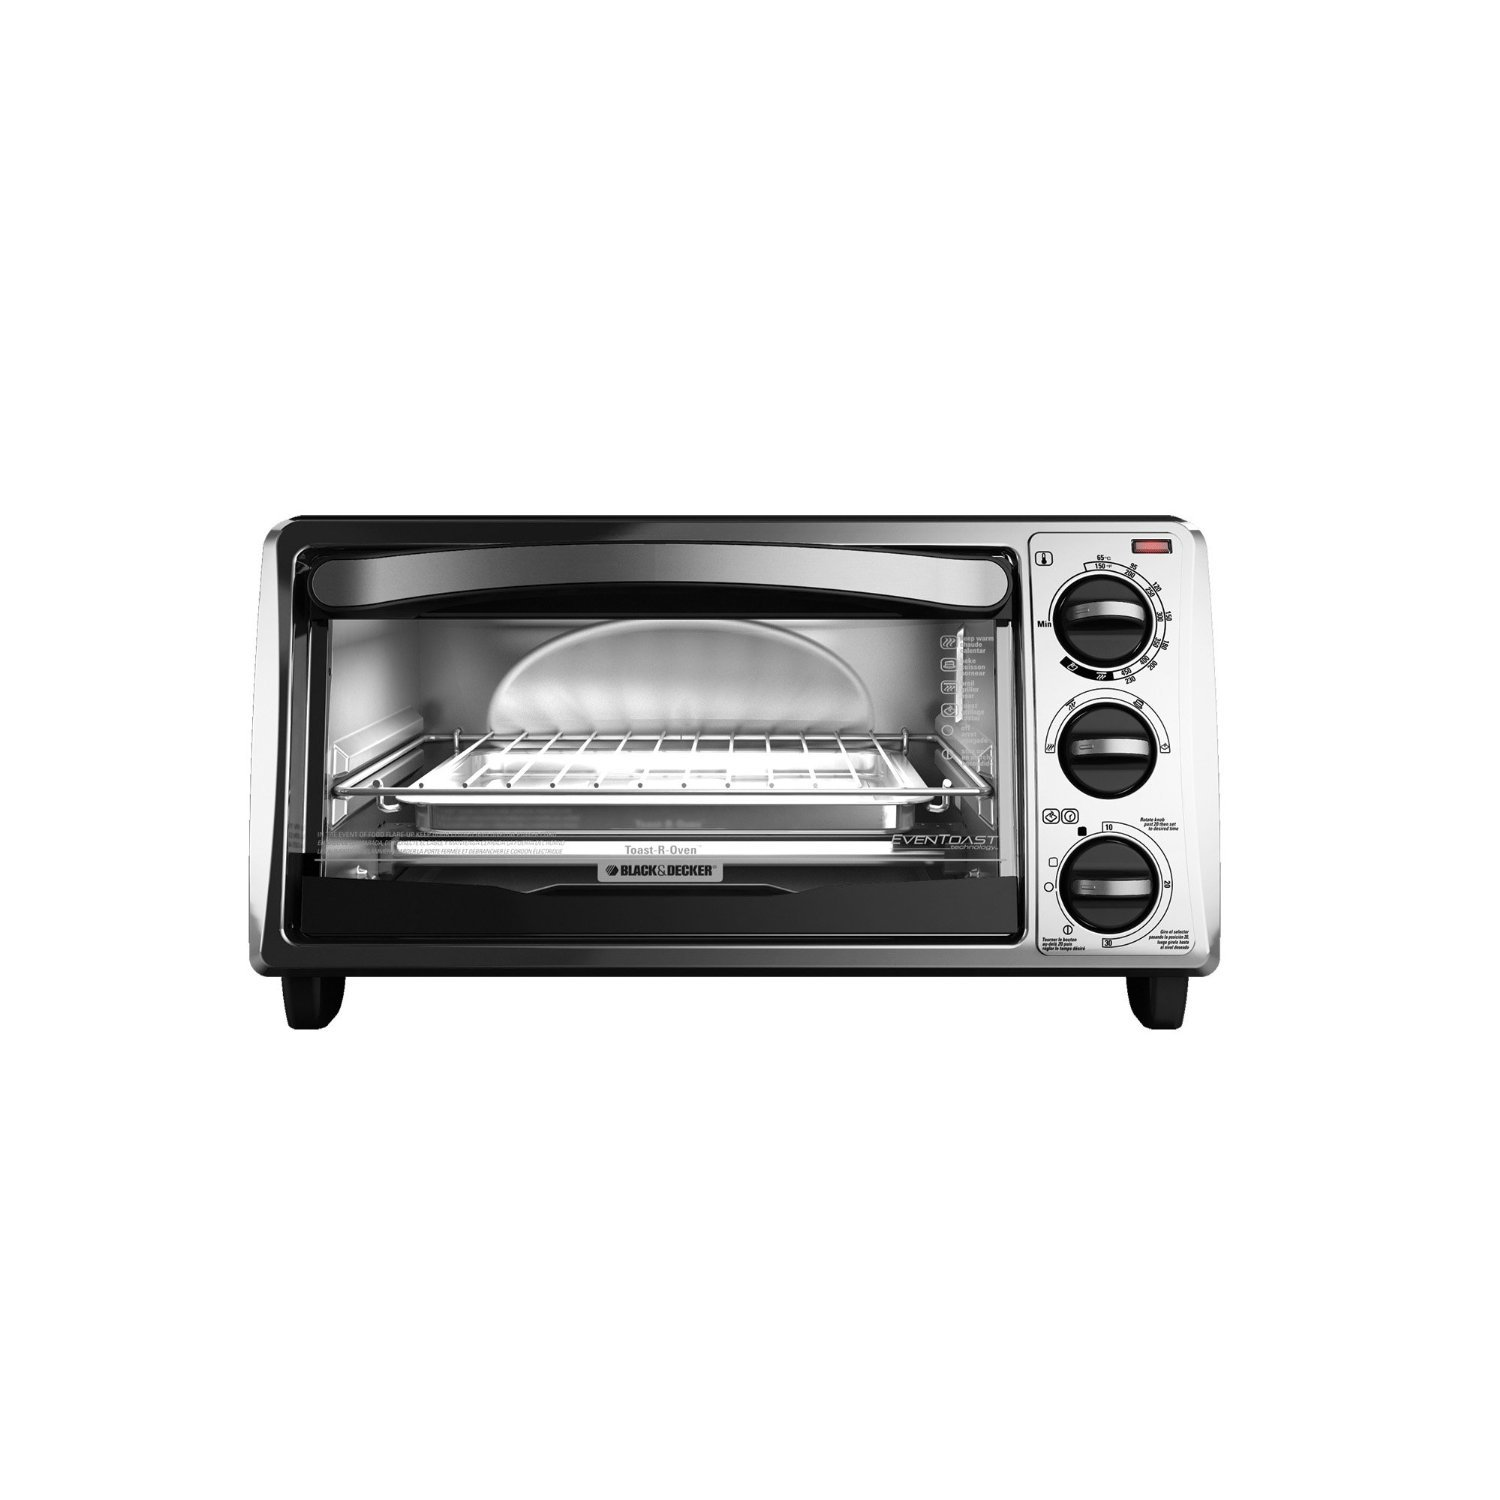 Slice Toaster Oven With Spots ~ Black decker to sb slice toaster oven silver